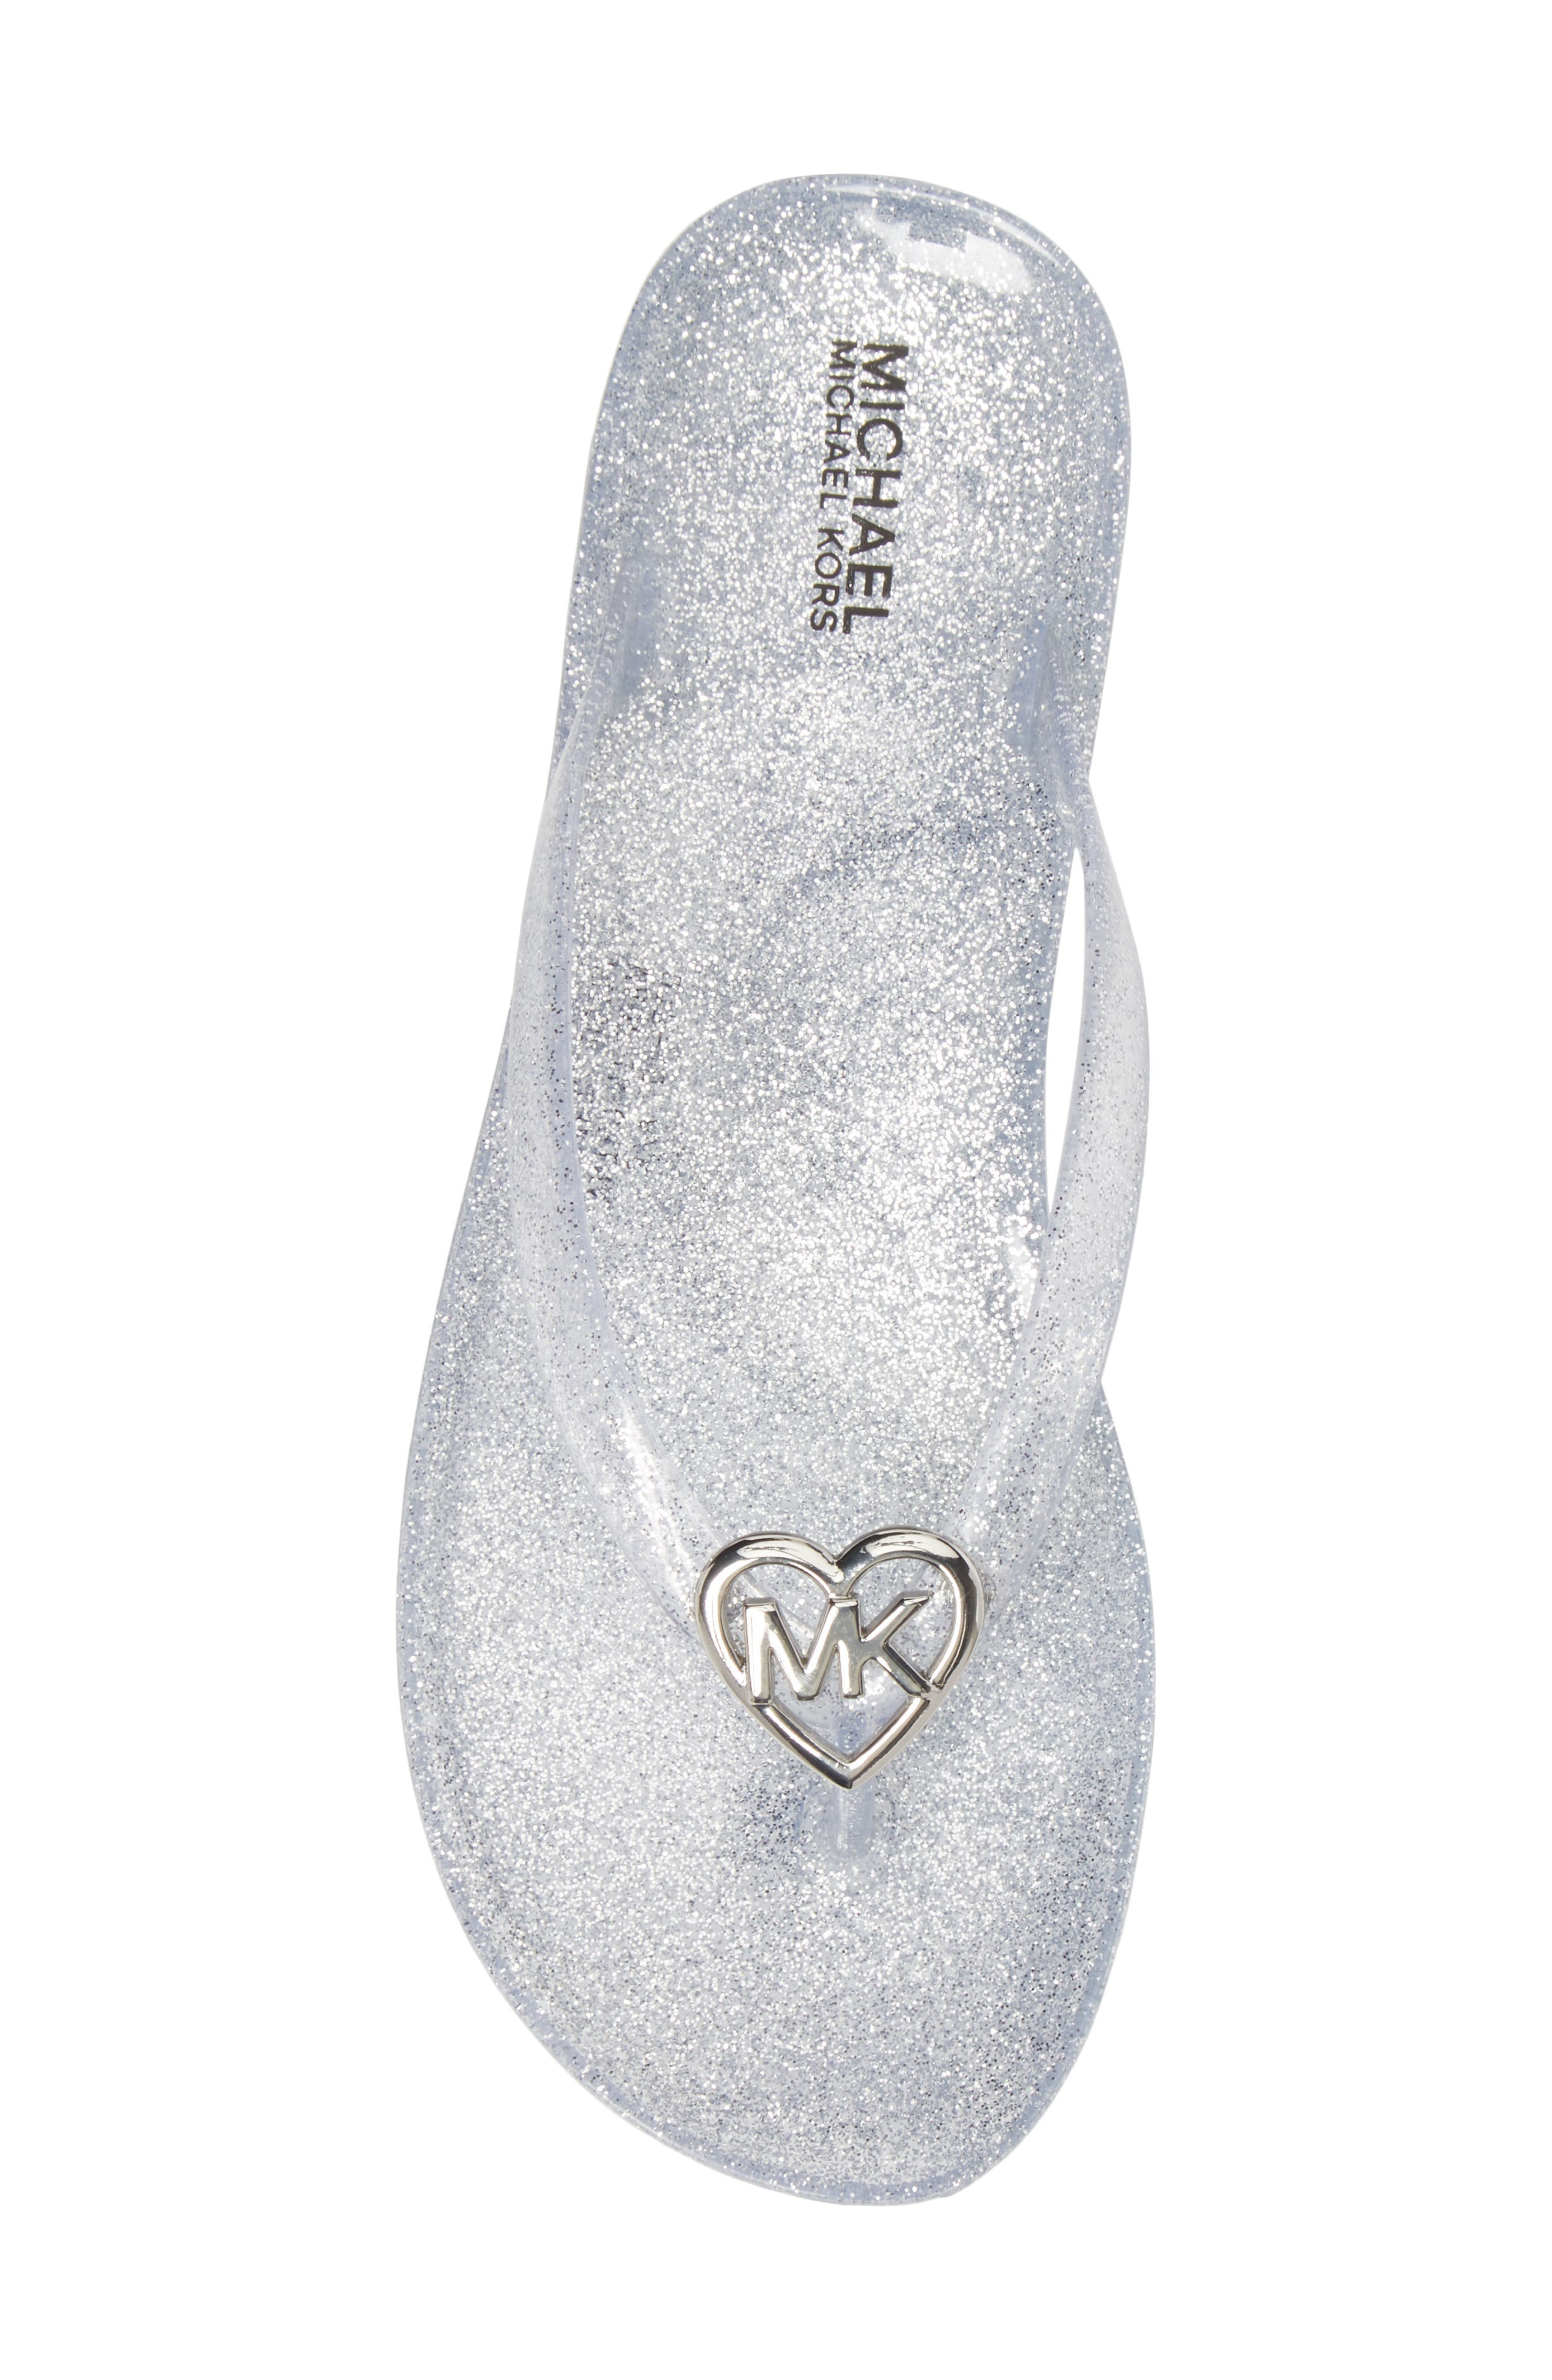 Trish Glare Glitter Flip Flop,                             Alternate thumbnail 5, color,                             040